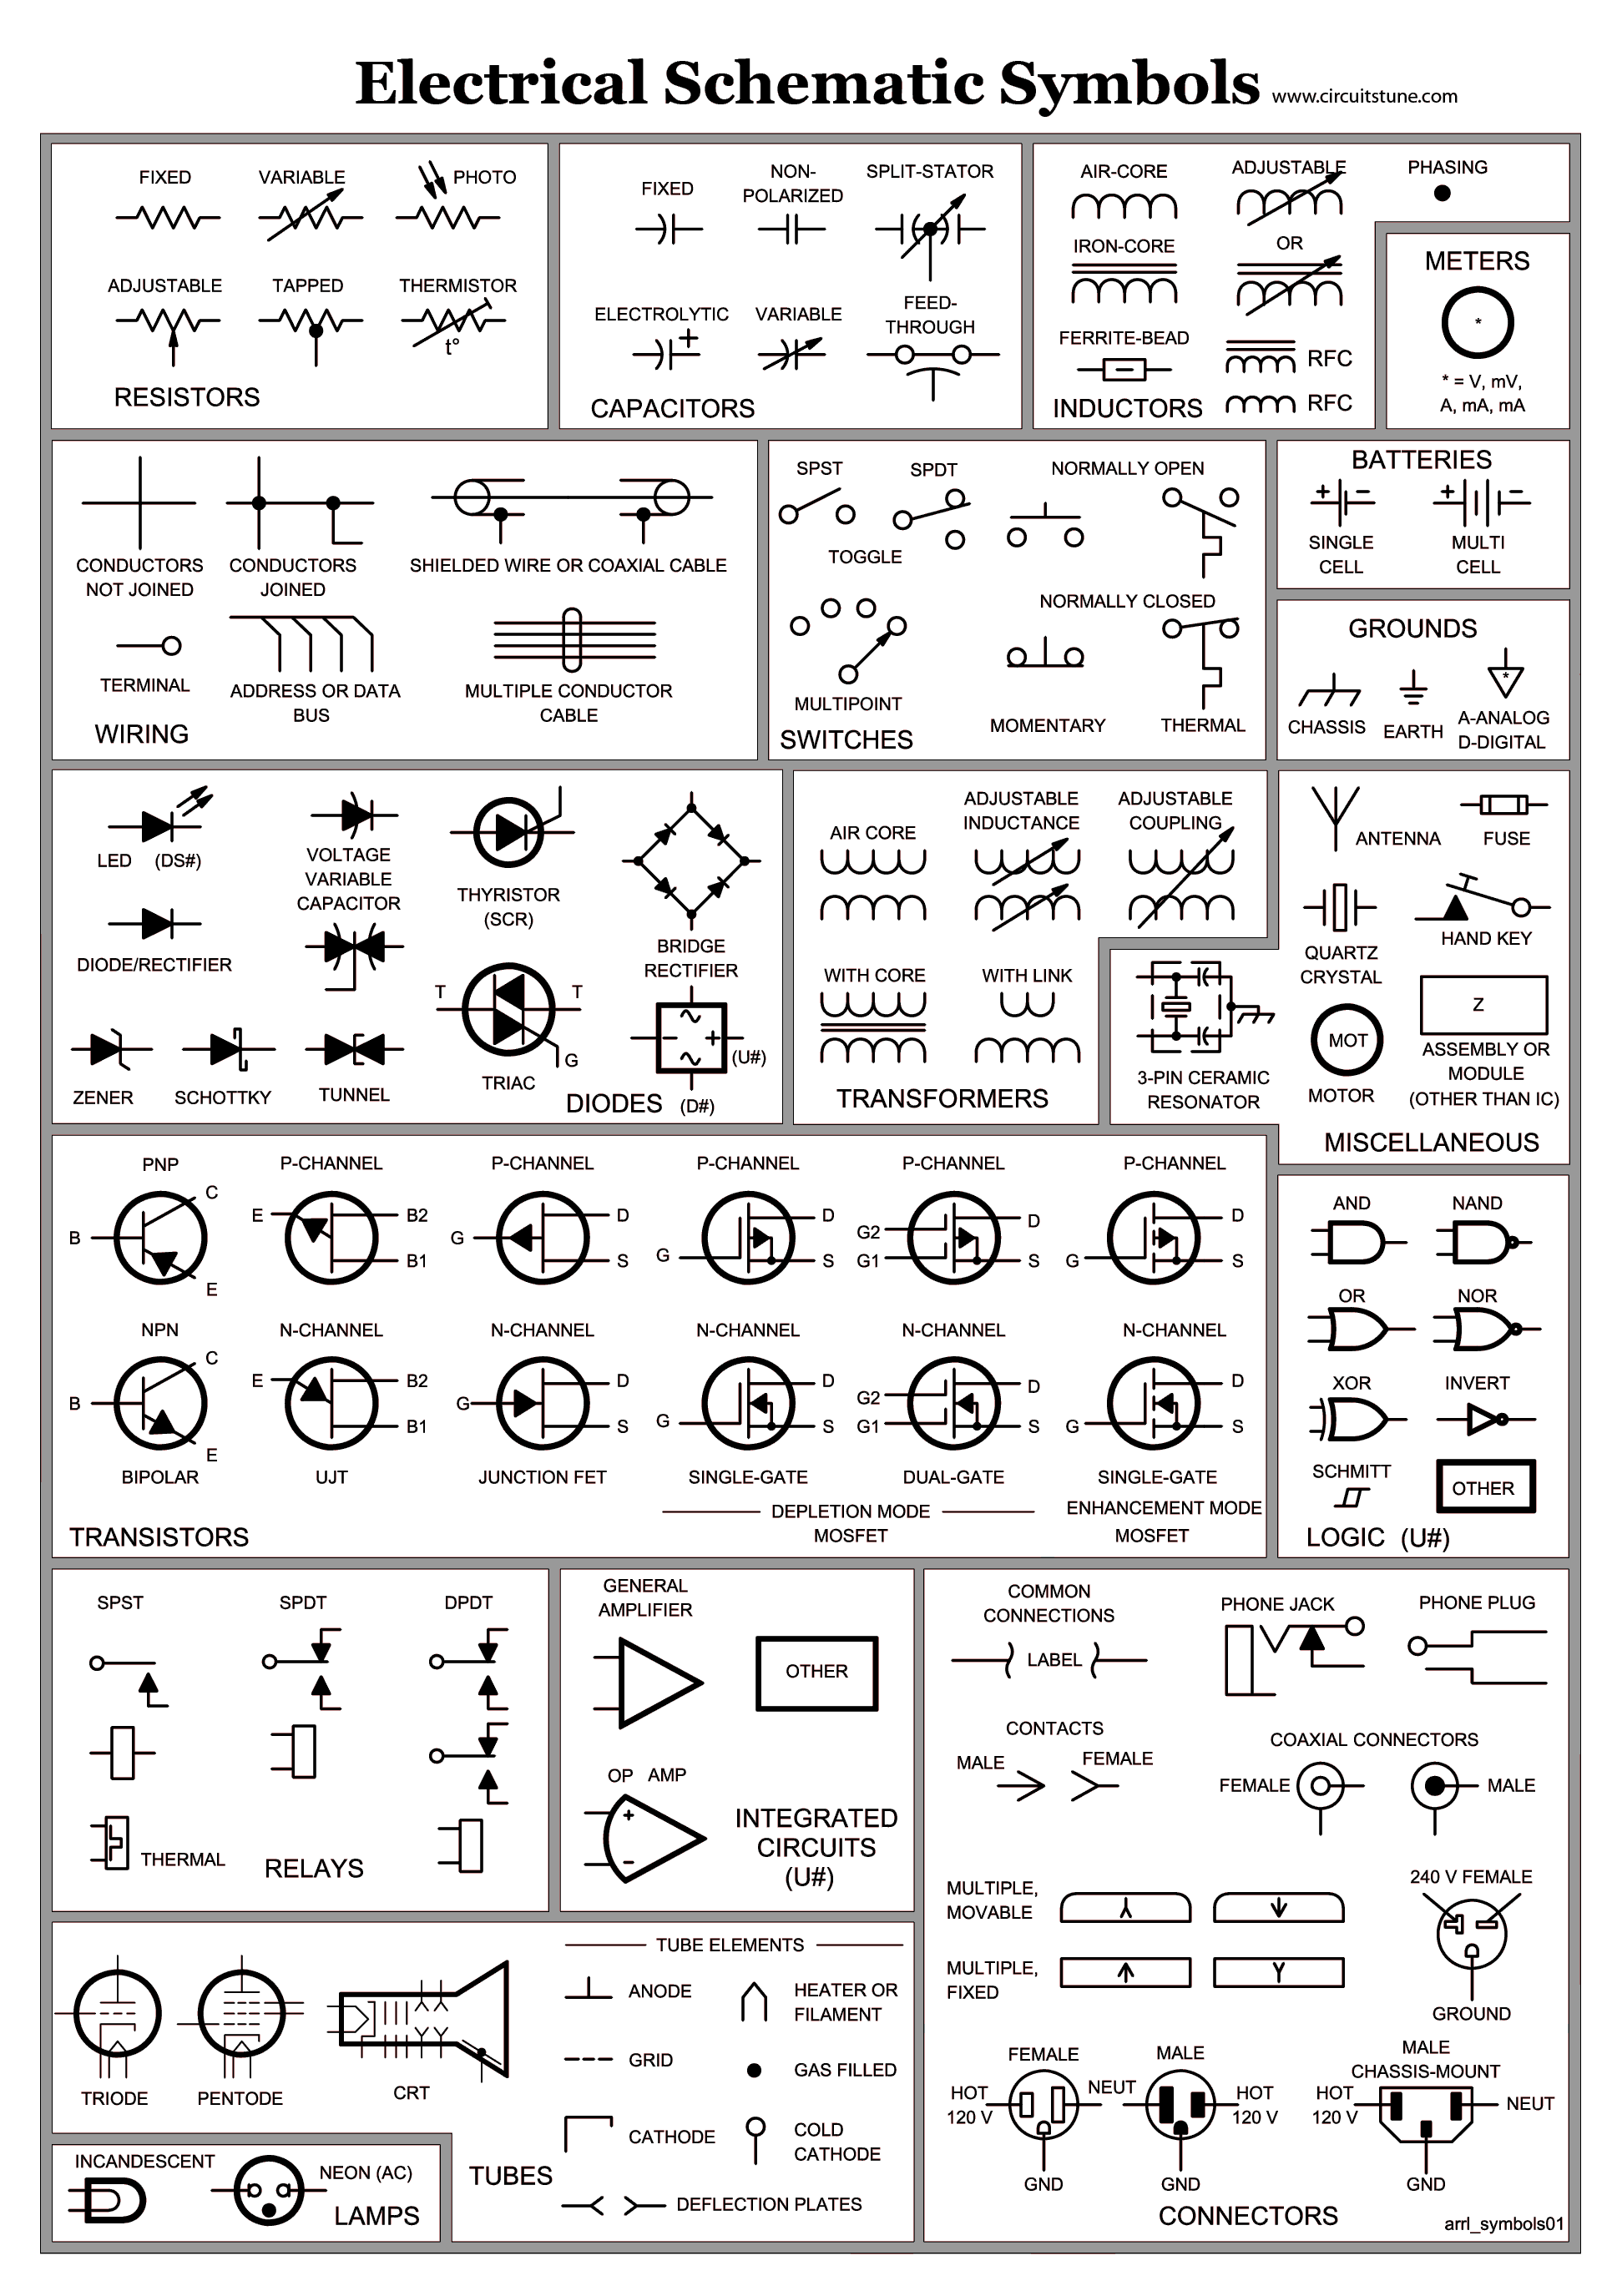 electrical schematic symbols wire diagram symbols automotive wiring rh pinterest com automotive electrical wiring diagram symbols automotive electrical wiring diagram symbols pdf